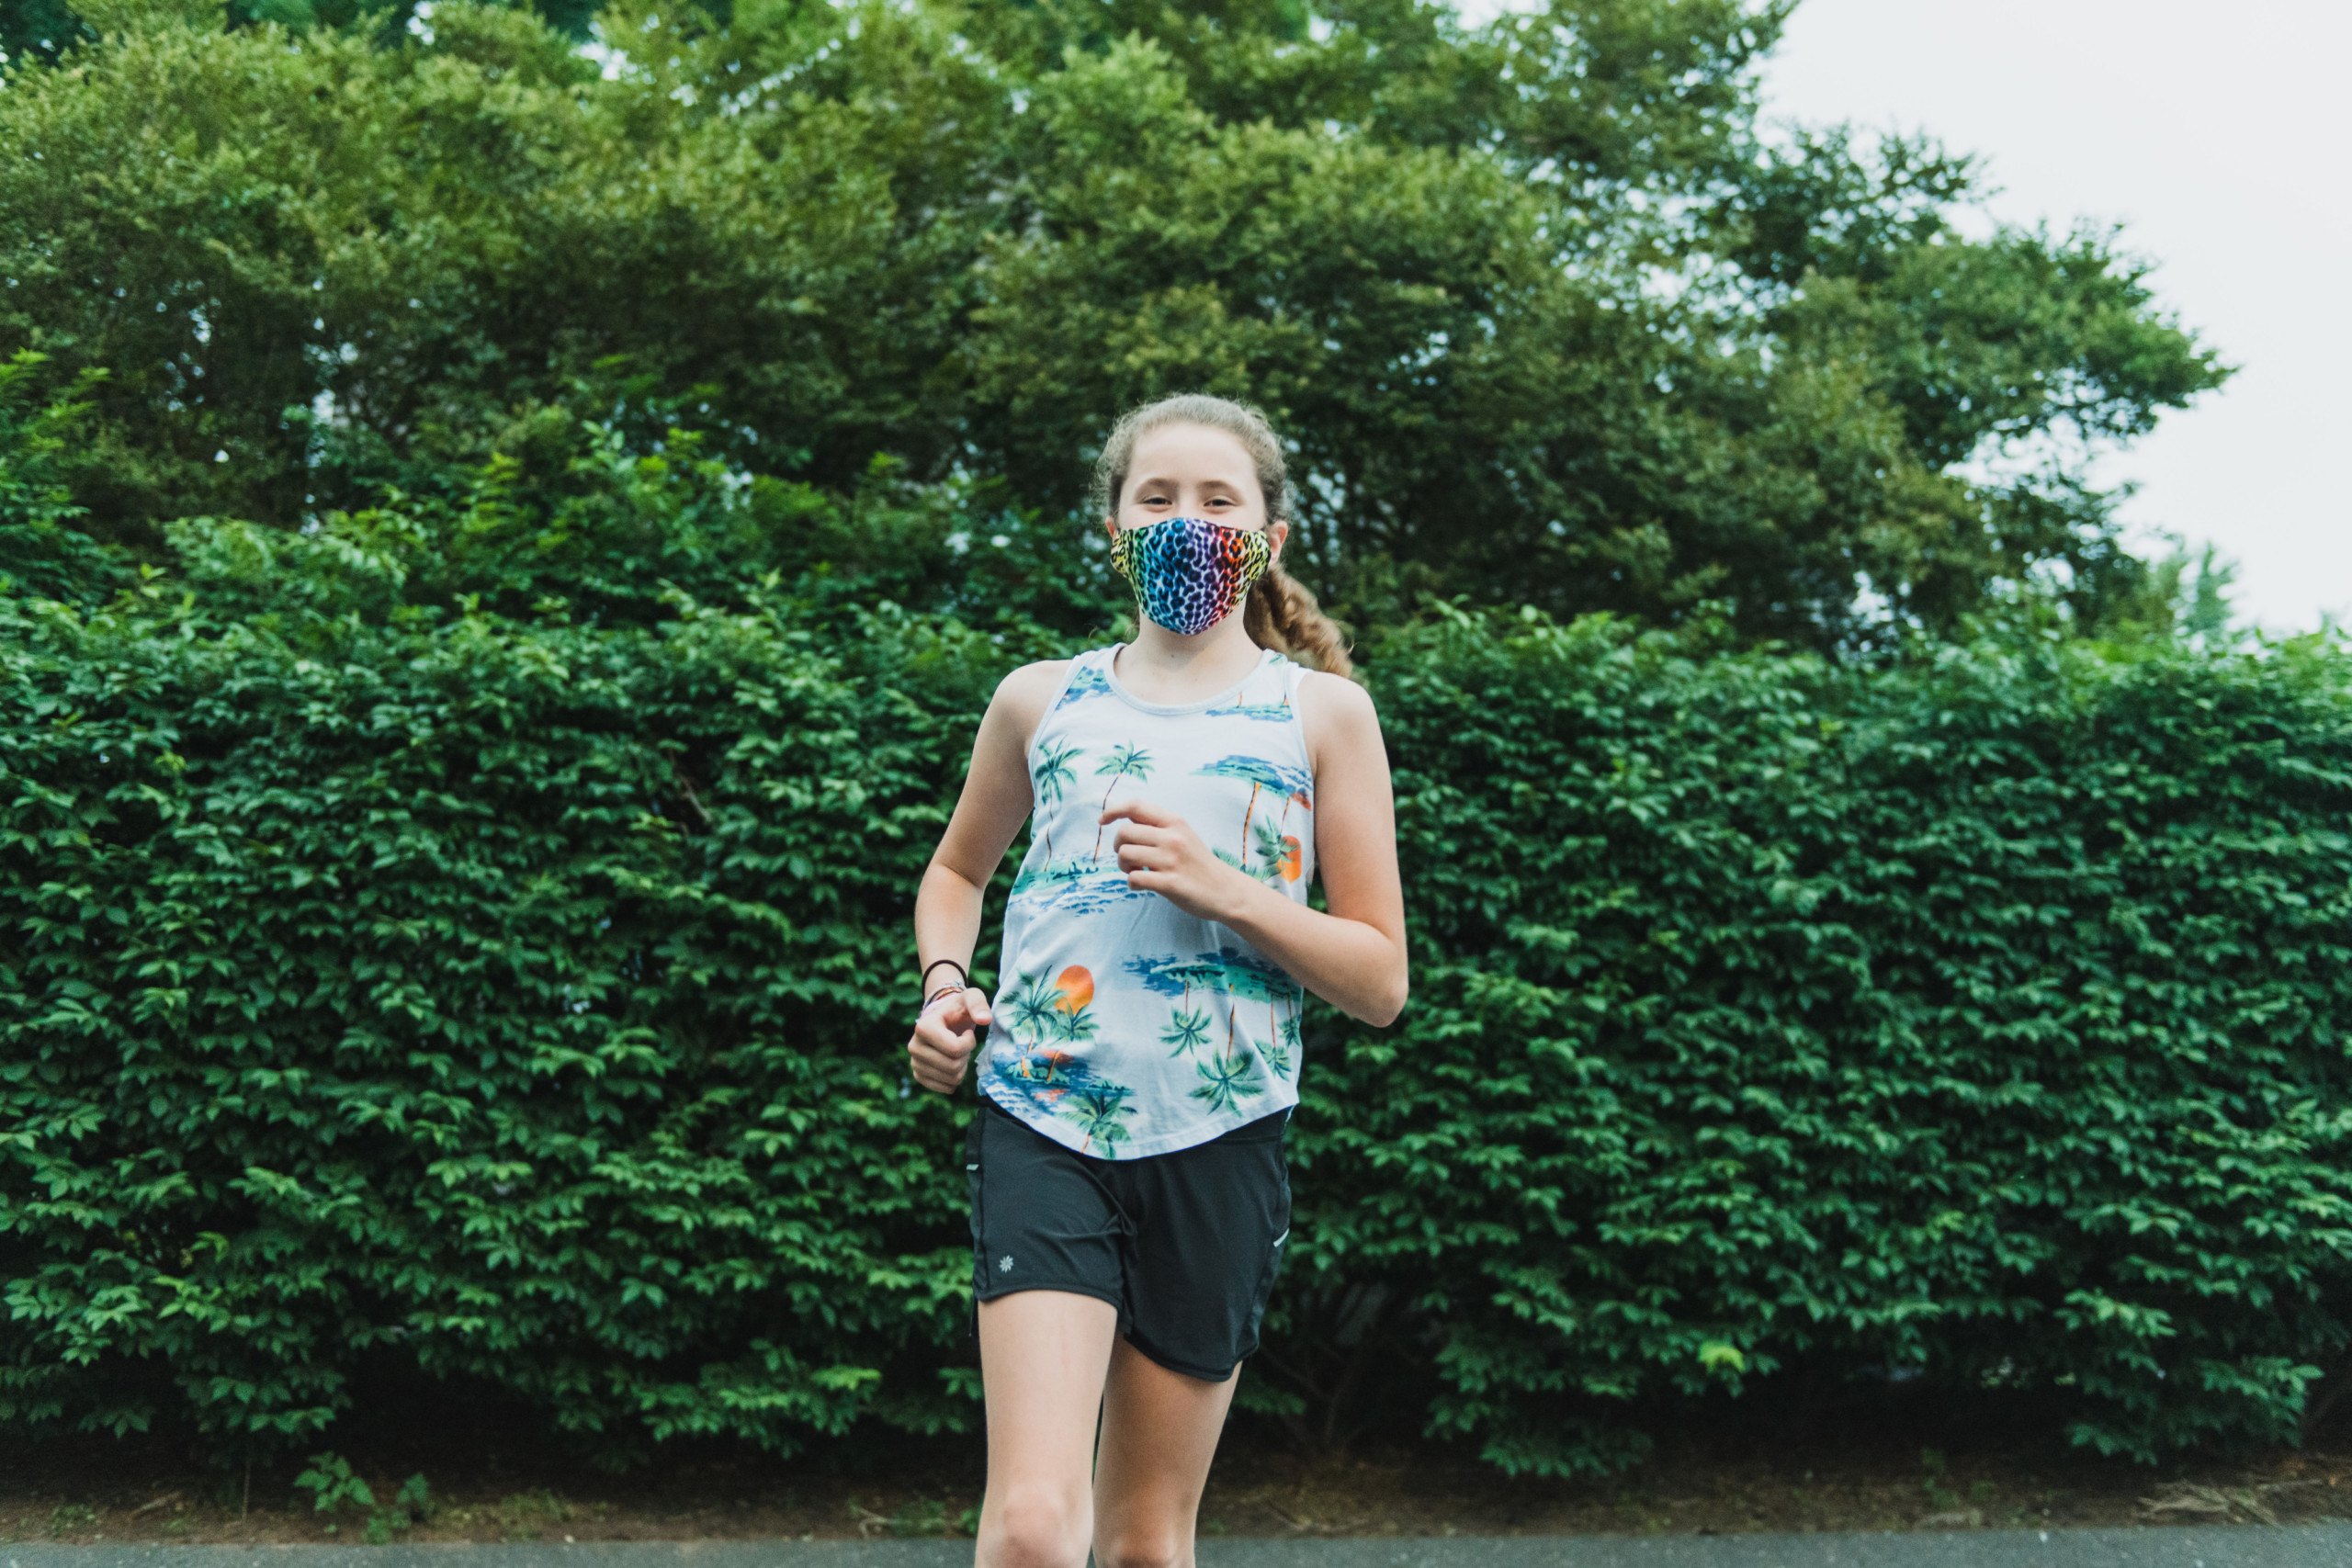 Teen wearing face mask while running.